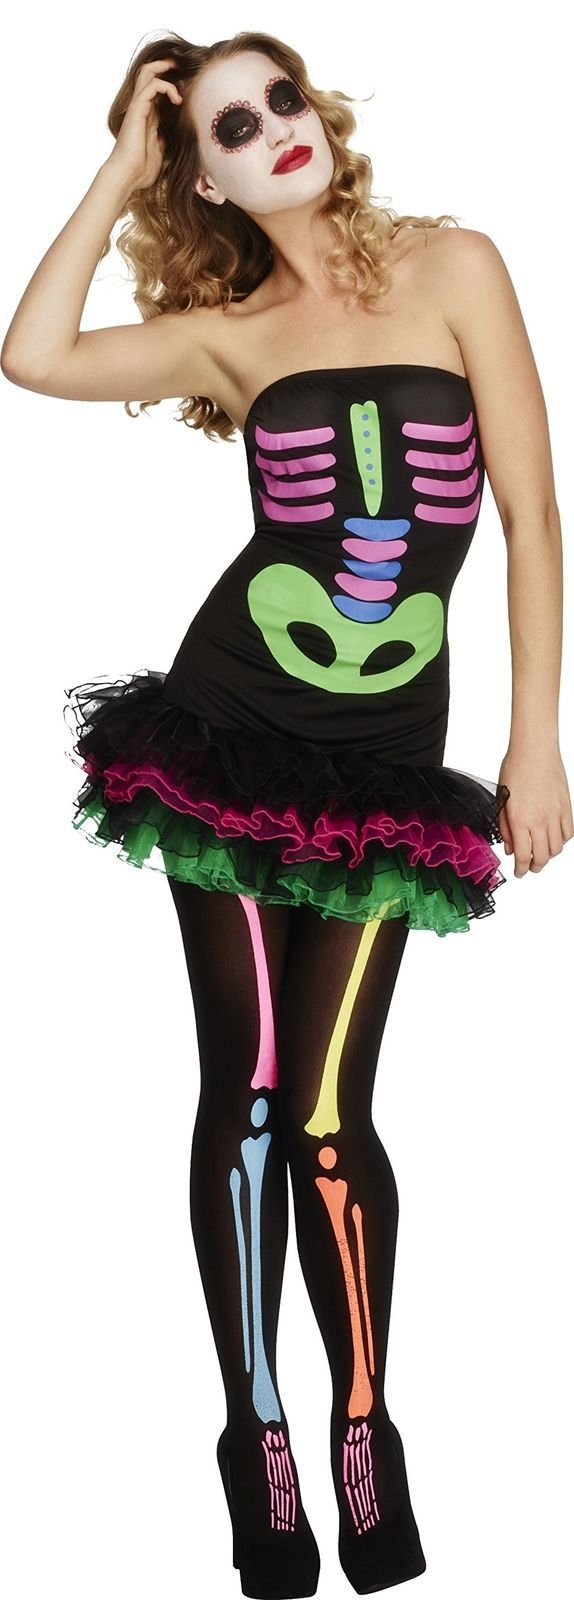 S l1600. S l1600. Fever Smiffys Womenu0027s Neon Skeleton Costume ...  sc 1 st  Bonanza & Fever Smiffys Womenu0027s Neon Skeleton Costume and 33 similar items